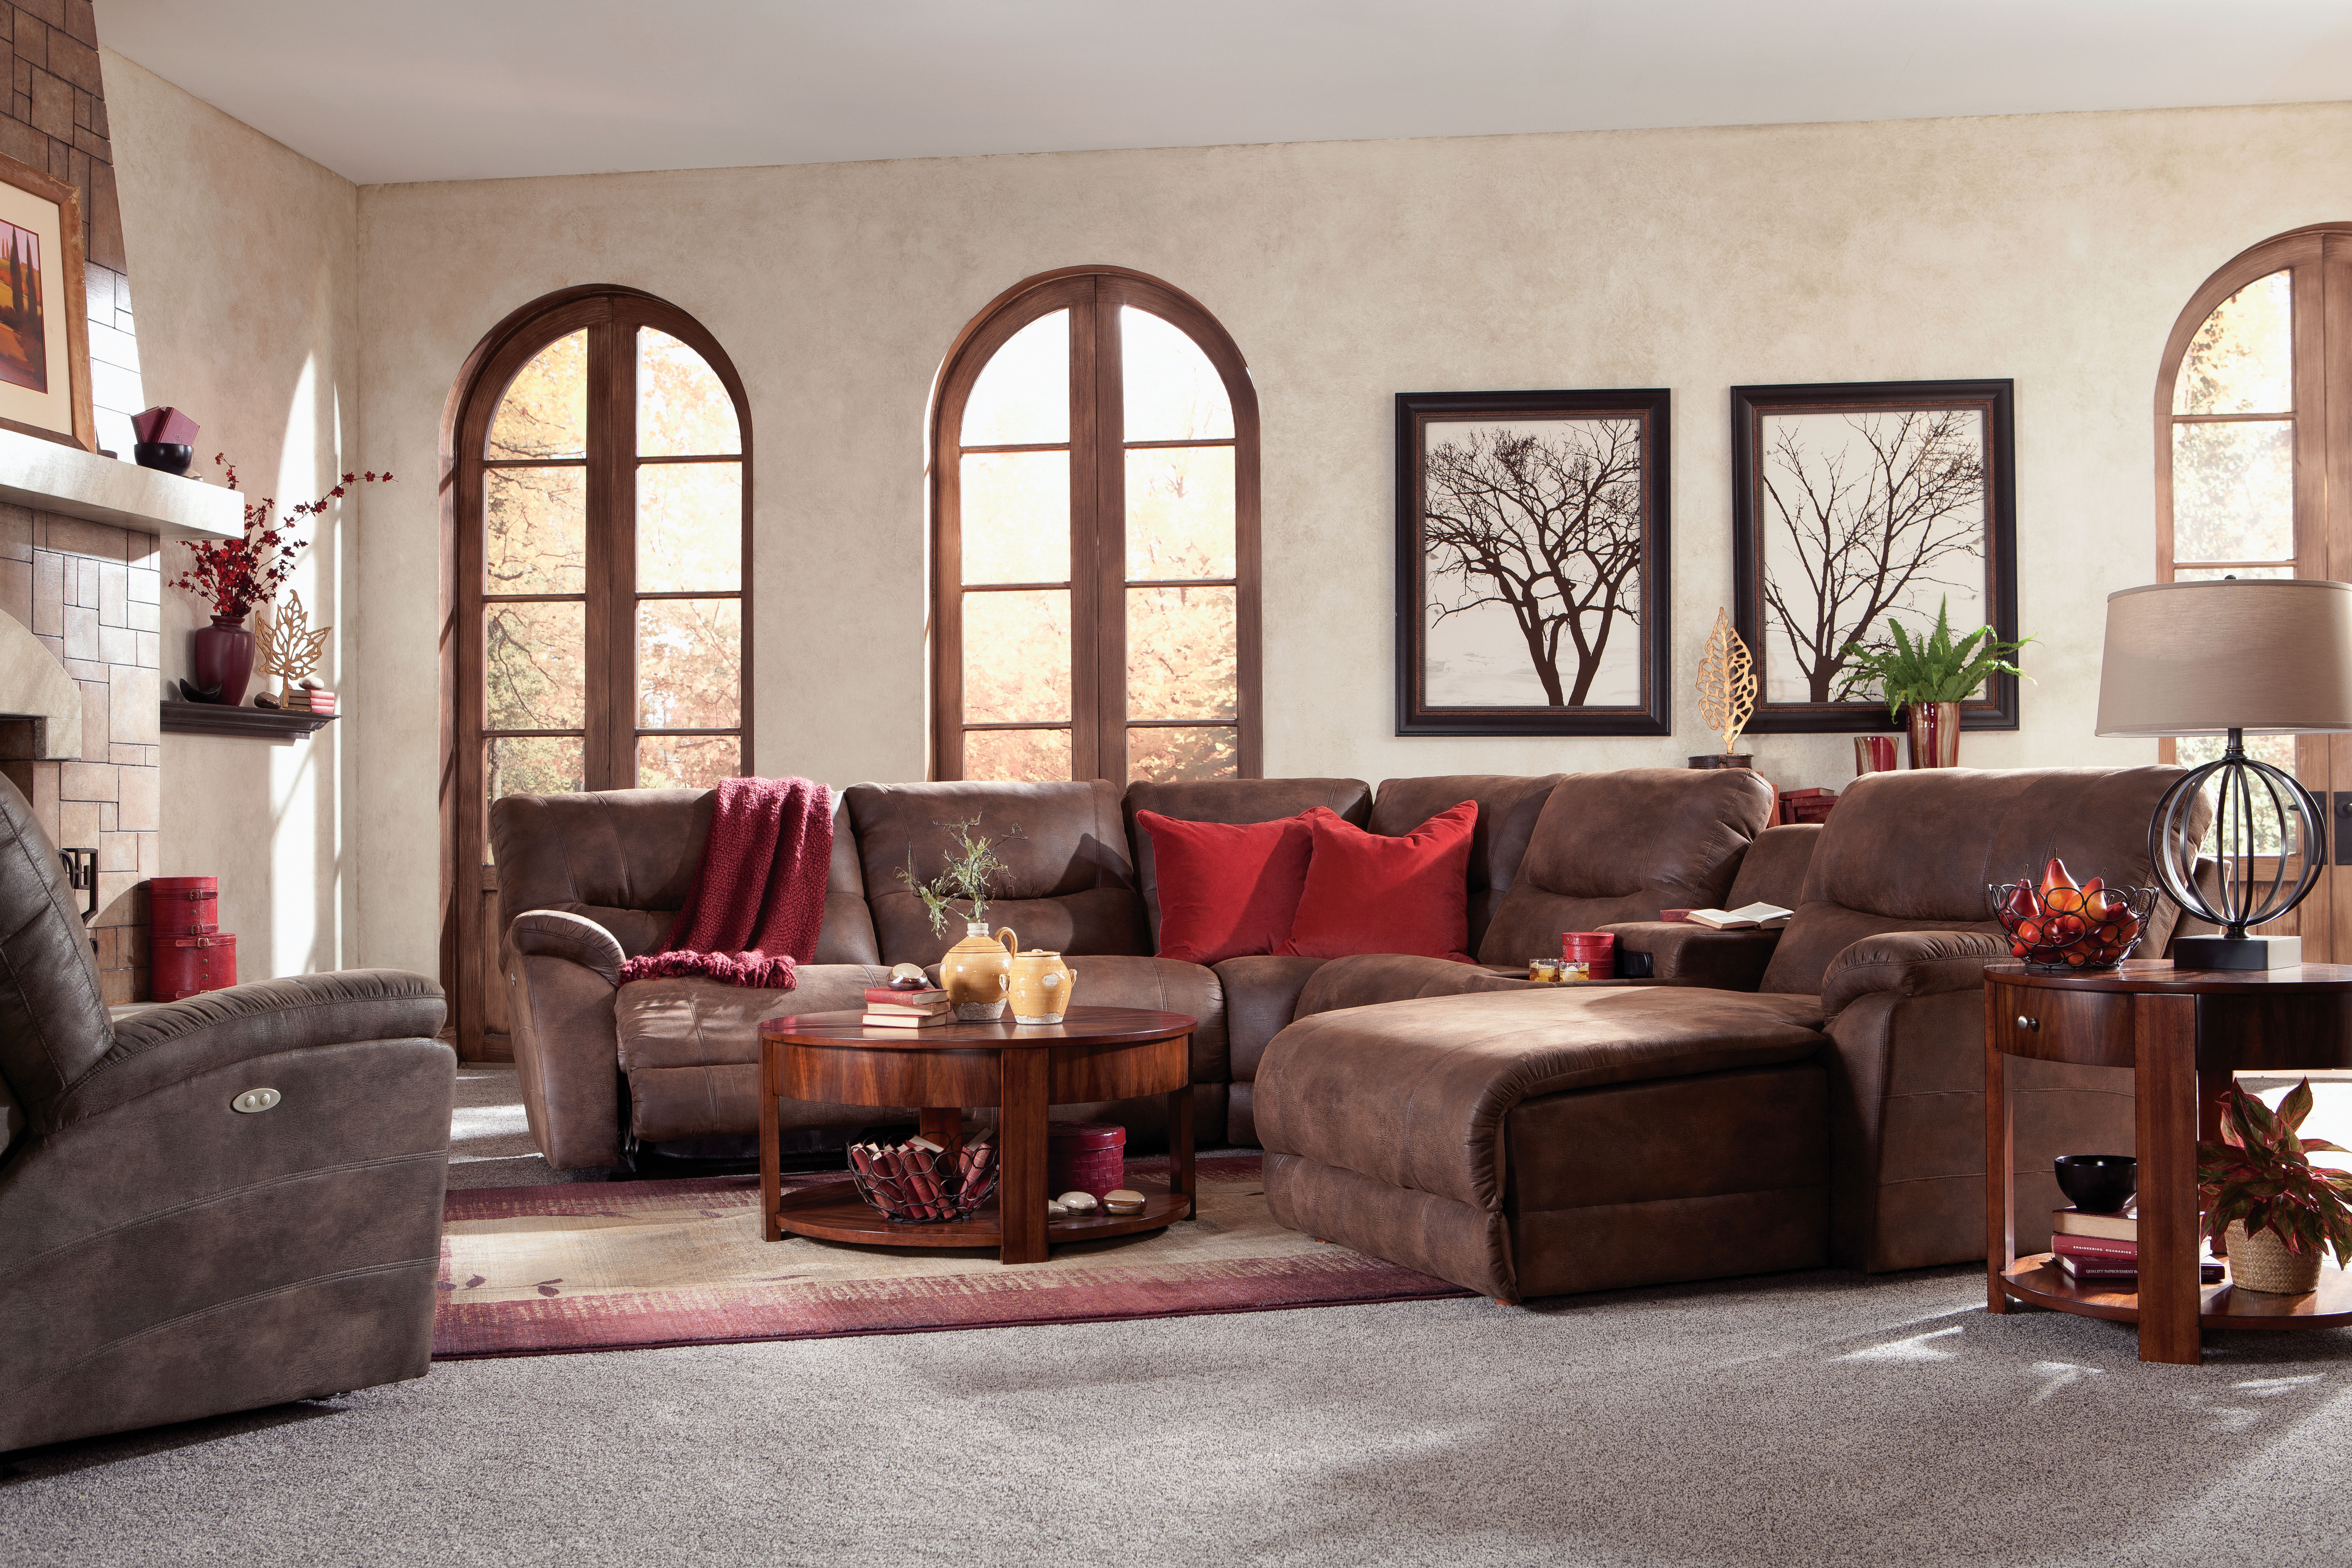 Bauer furniture in carthage tx 75633 for Affordable furniture commerce tx